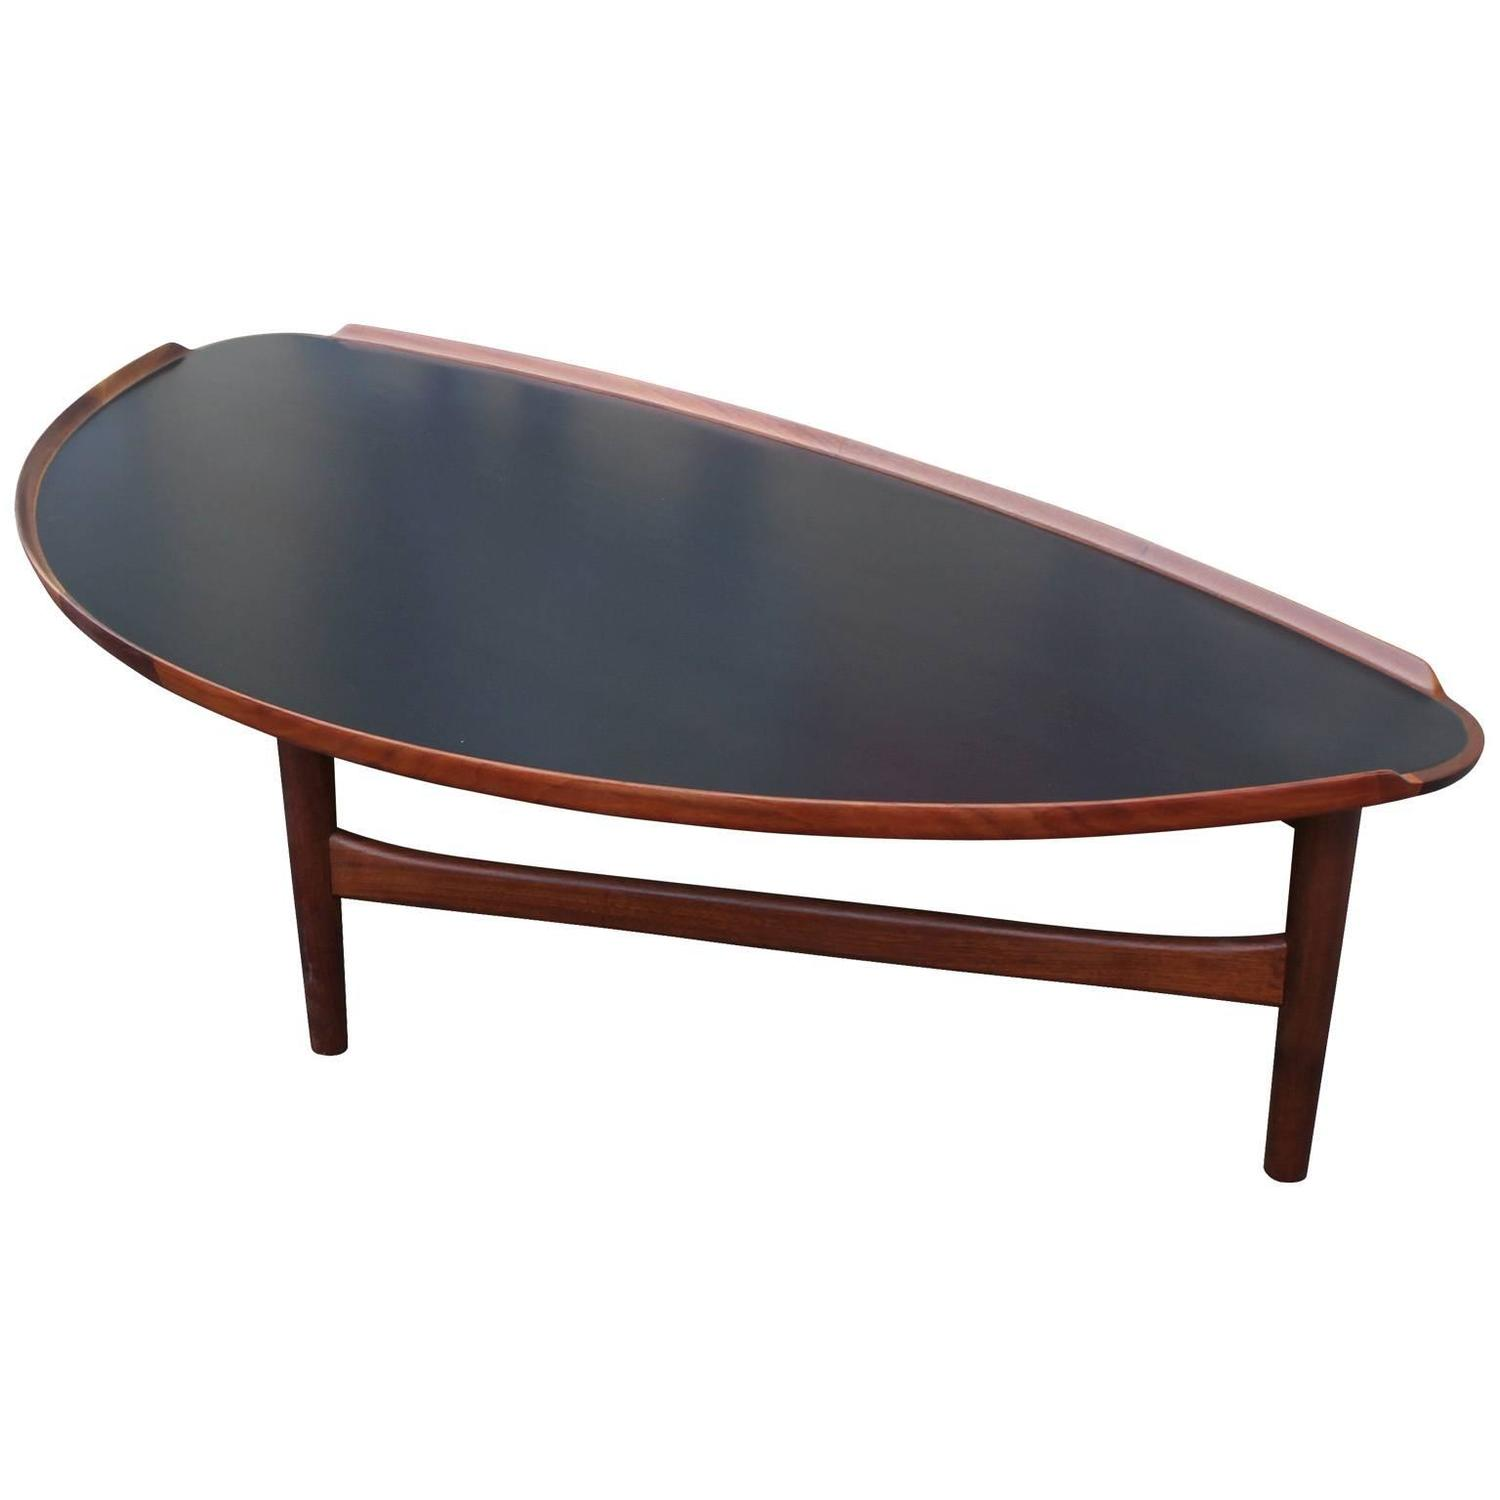 Oragnic Finn Juhl For Baker Two Tone Walnut Coffee Table At 1stdibs